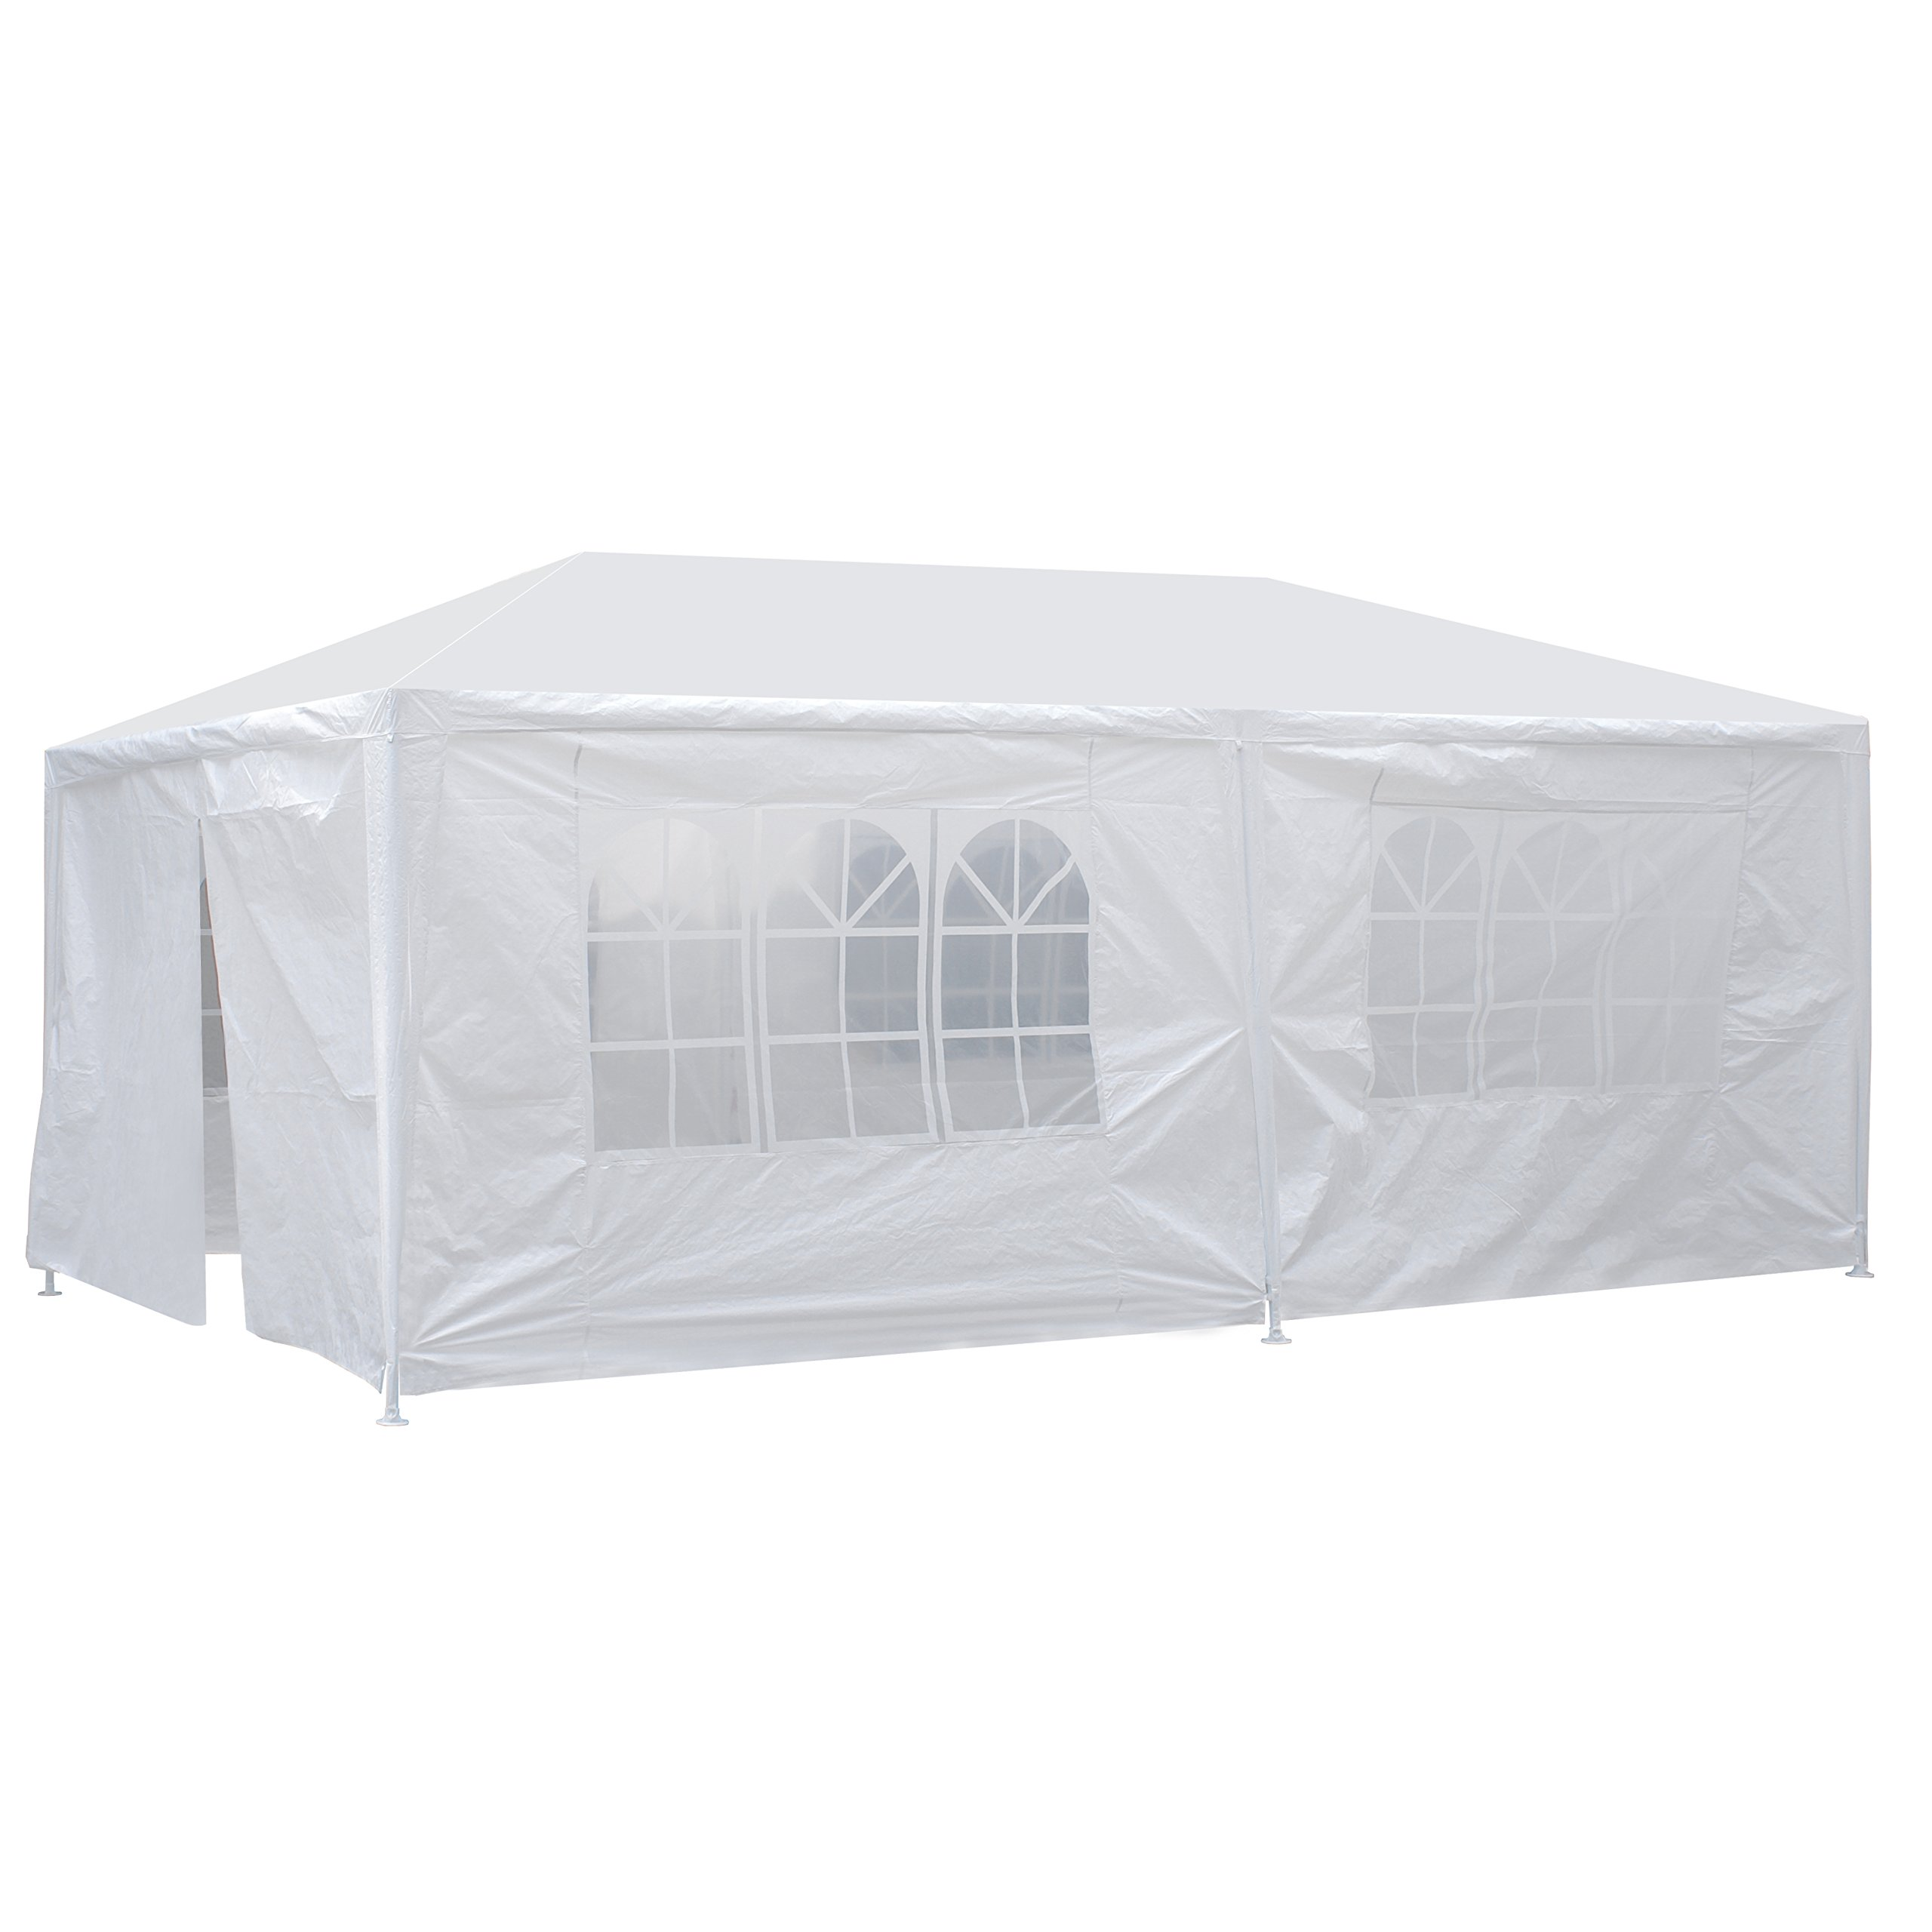 Smartxchoices 10' x 20' Outdoor White Waterproof Gazebo Canopy Tent with 6 Removable Sidewalls and Windows Heavy Duty Tent for Party Wedding Events Beach BBQ (10' x 20' with 6 Sidewalls) by Smartxchoices